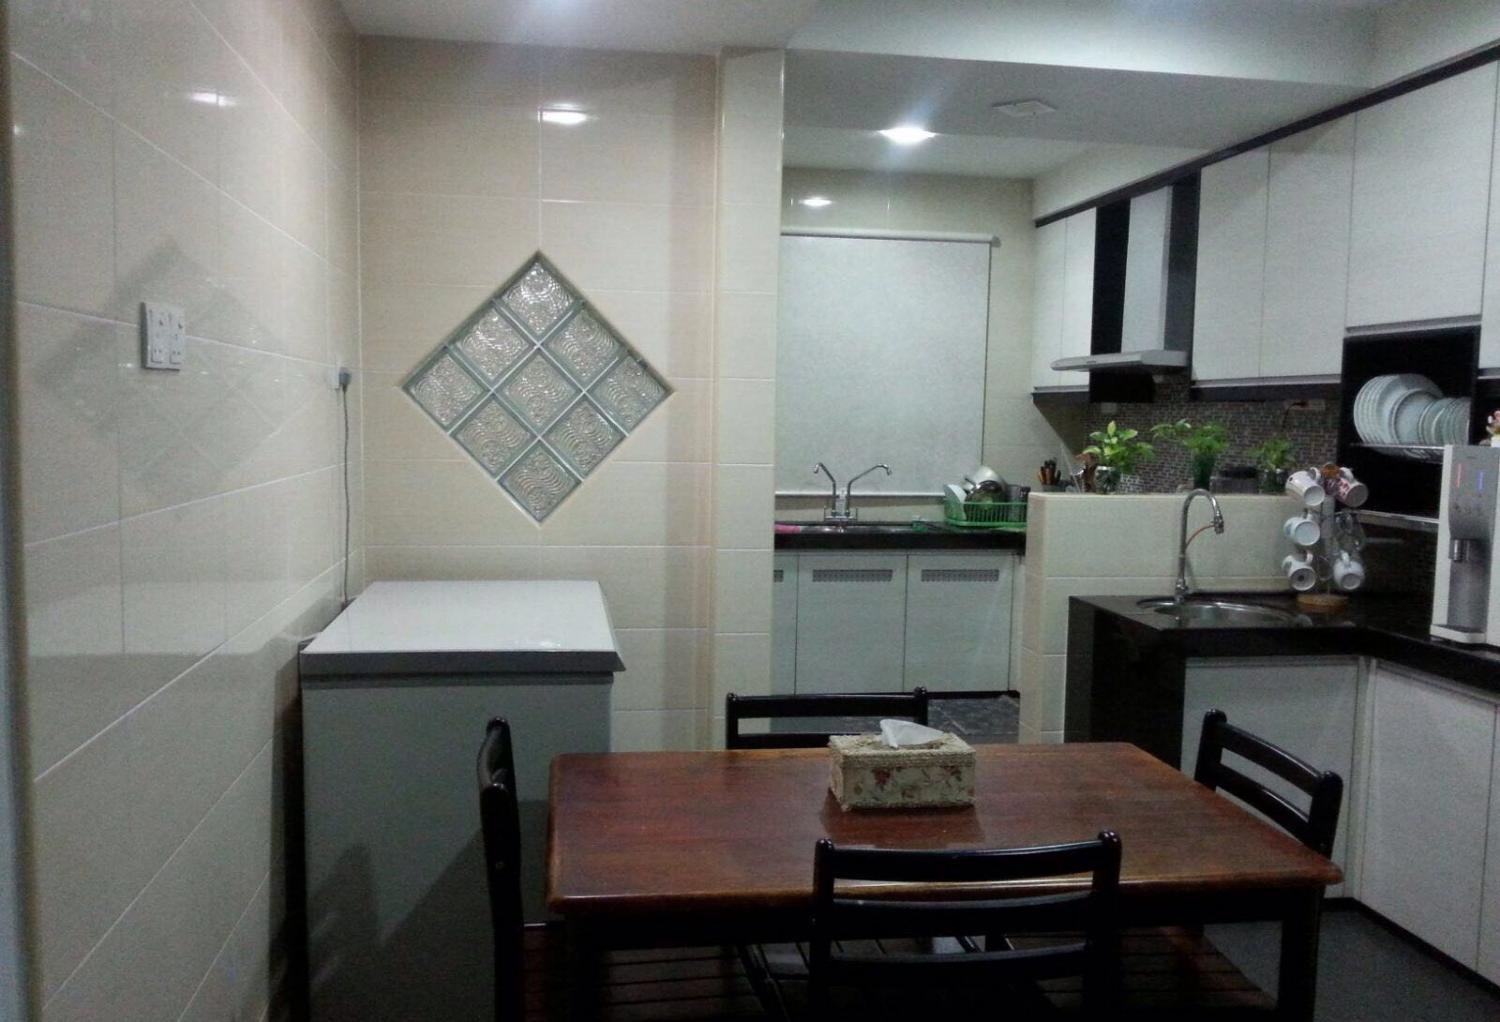 2Sty Terrace Section 8 Shah Alam